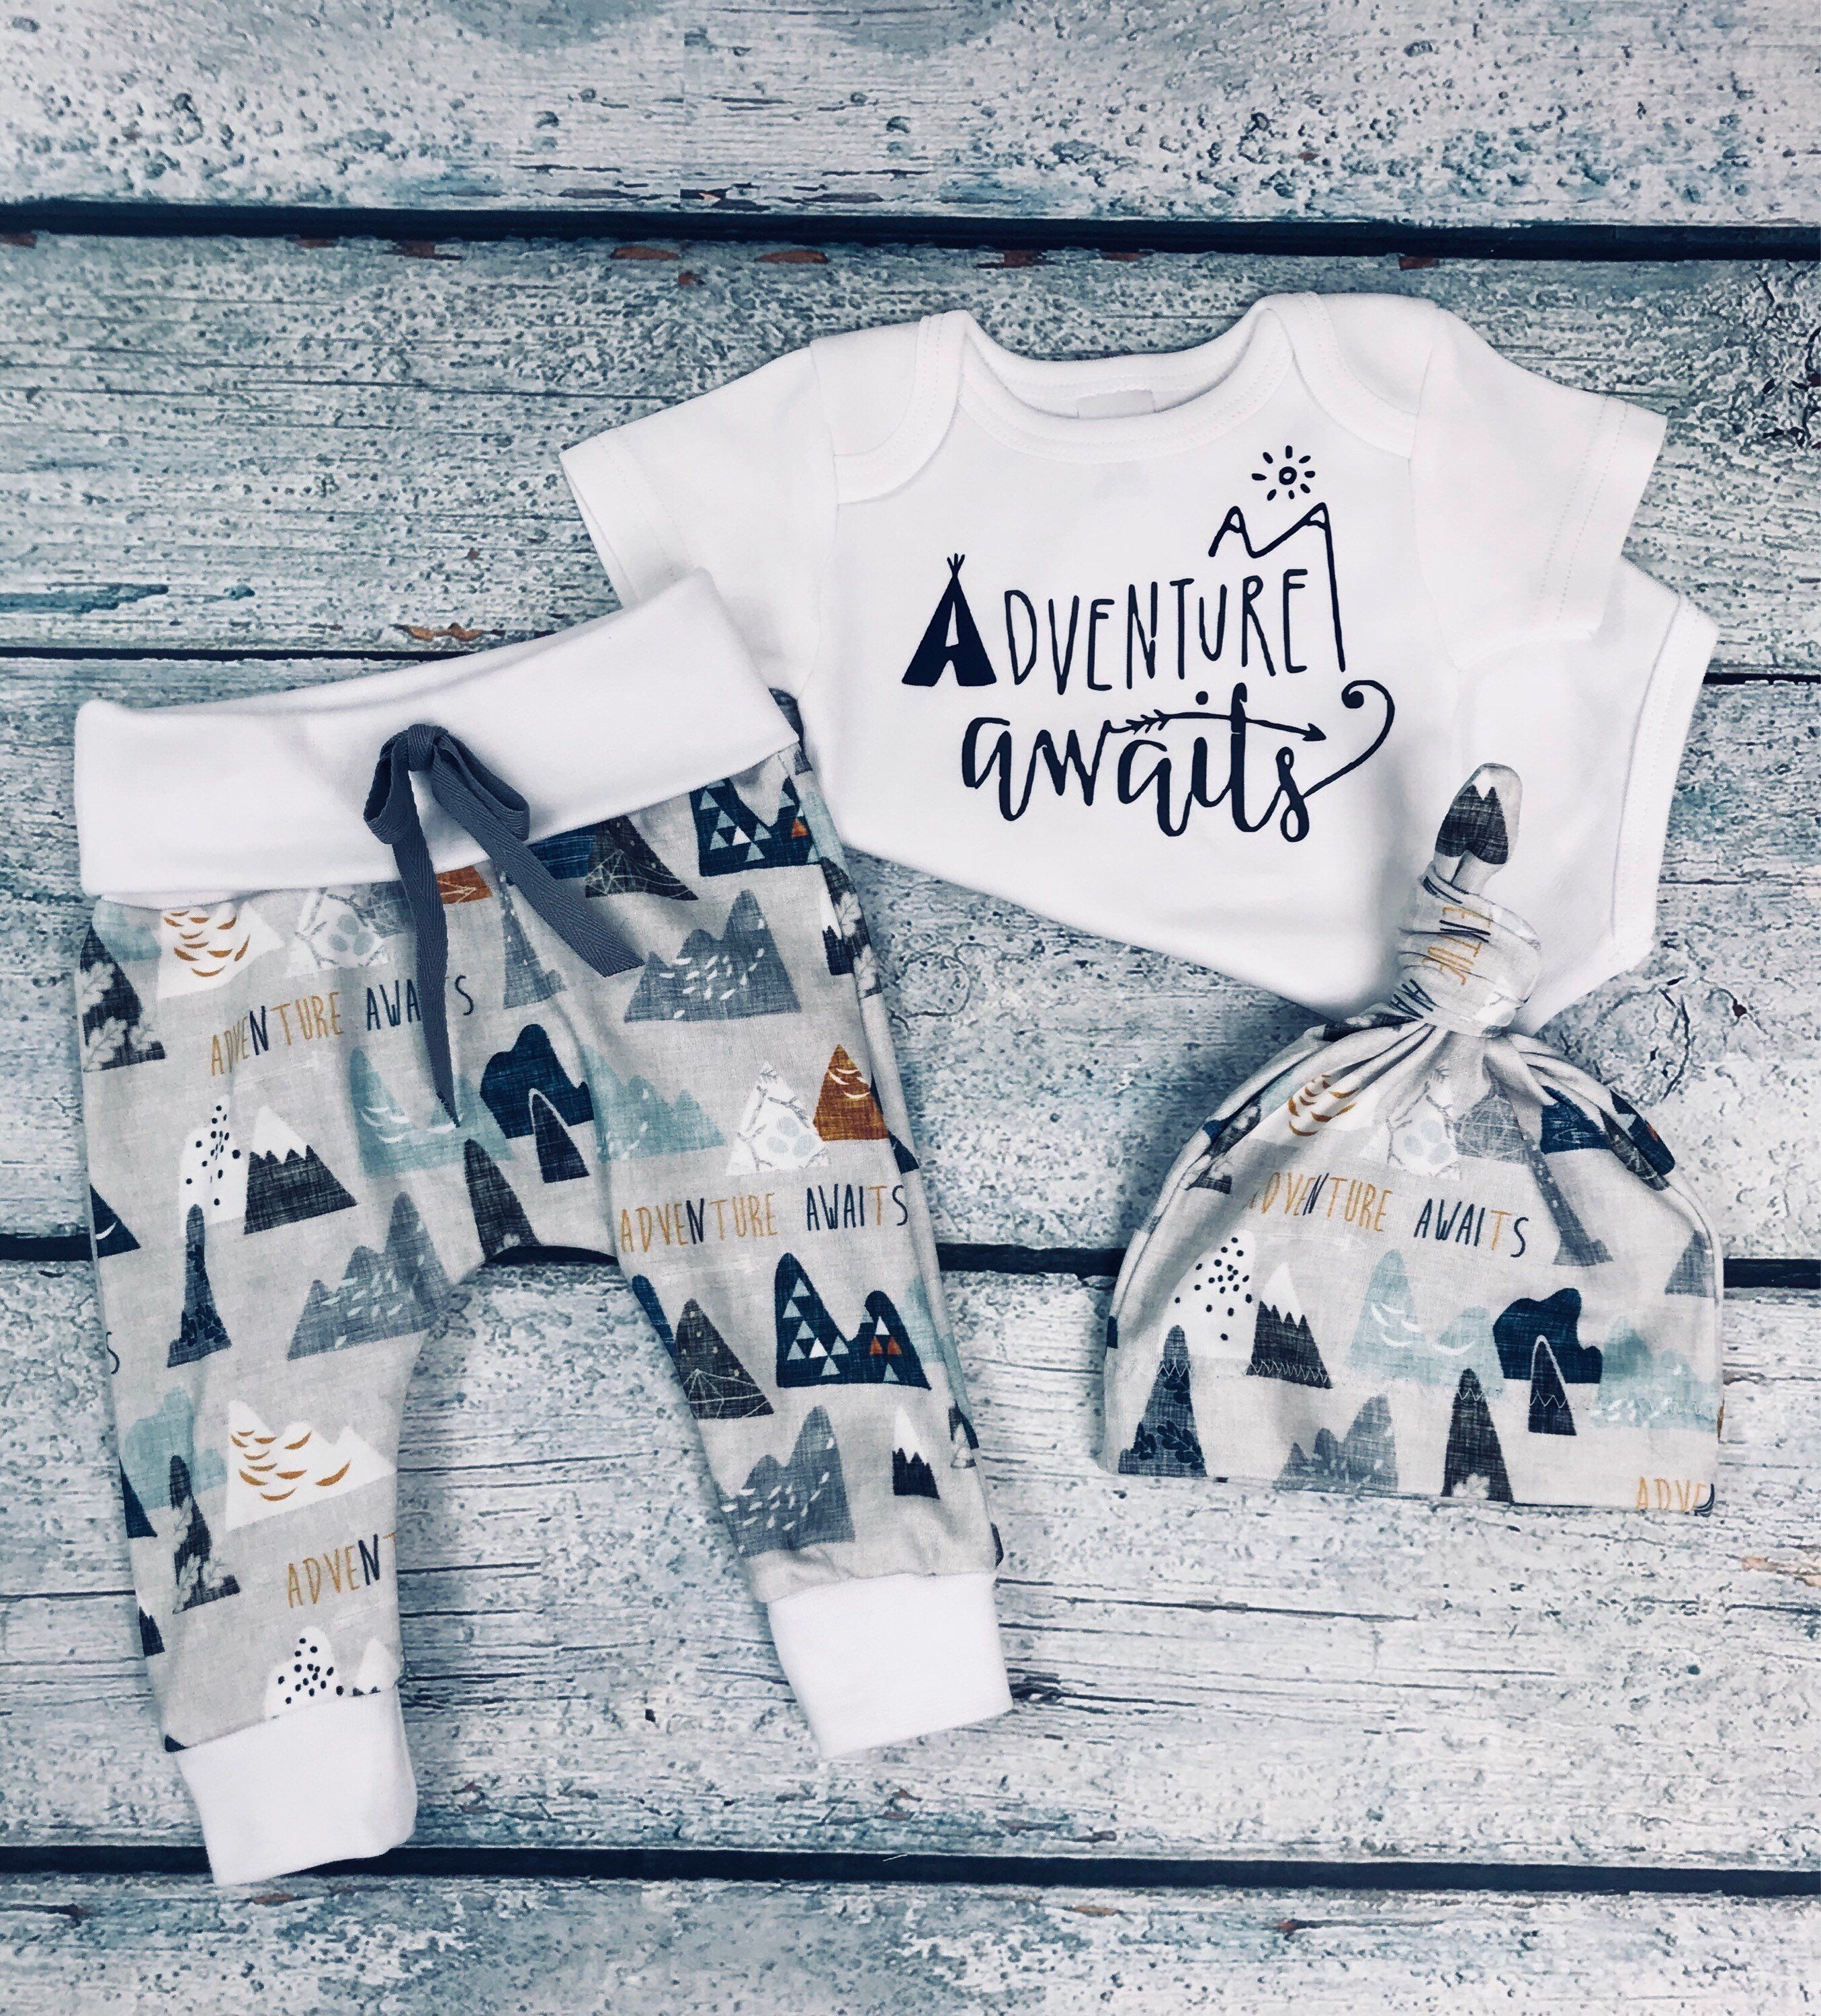 ec94935e05f1 baby boy coming home outfit adventure awaits outfit baby boy take home  outfit newborn outfit organic cotton newborn set baby shower gift by ...